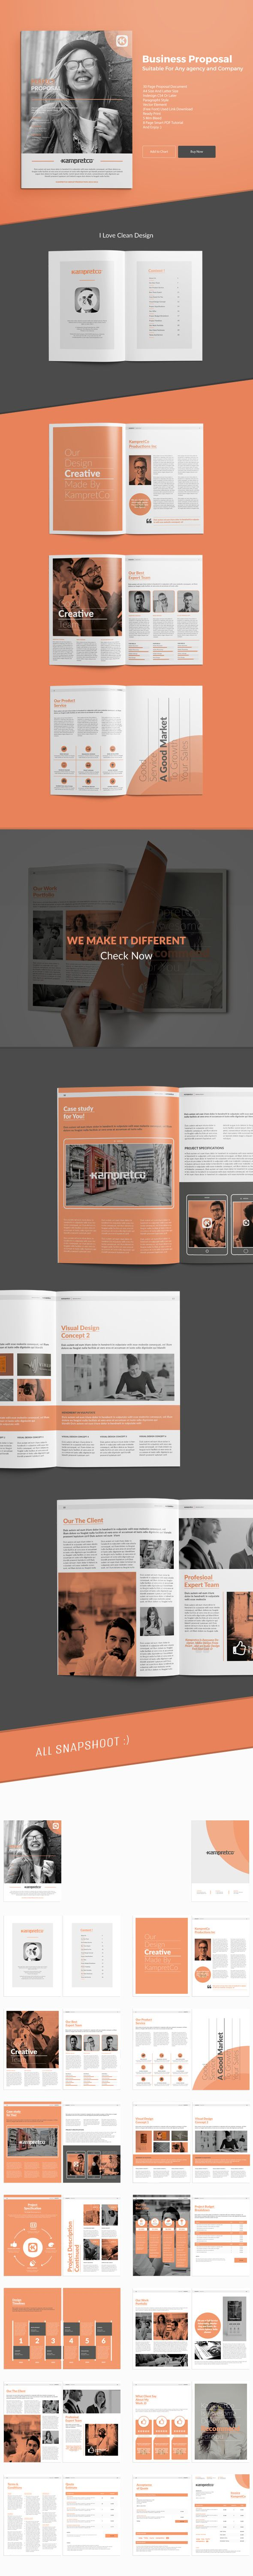 a4, agency proposal, brand, brief, brochure design, business, business proposal, clean, corporate, creative, design, egotype, identity, indesign, indesign templates, informational, light, minimal, modern, moscovita, professional, project proposal, proposa…